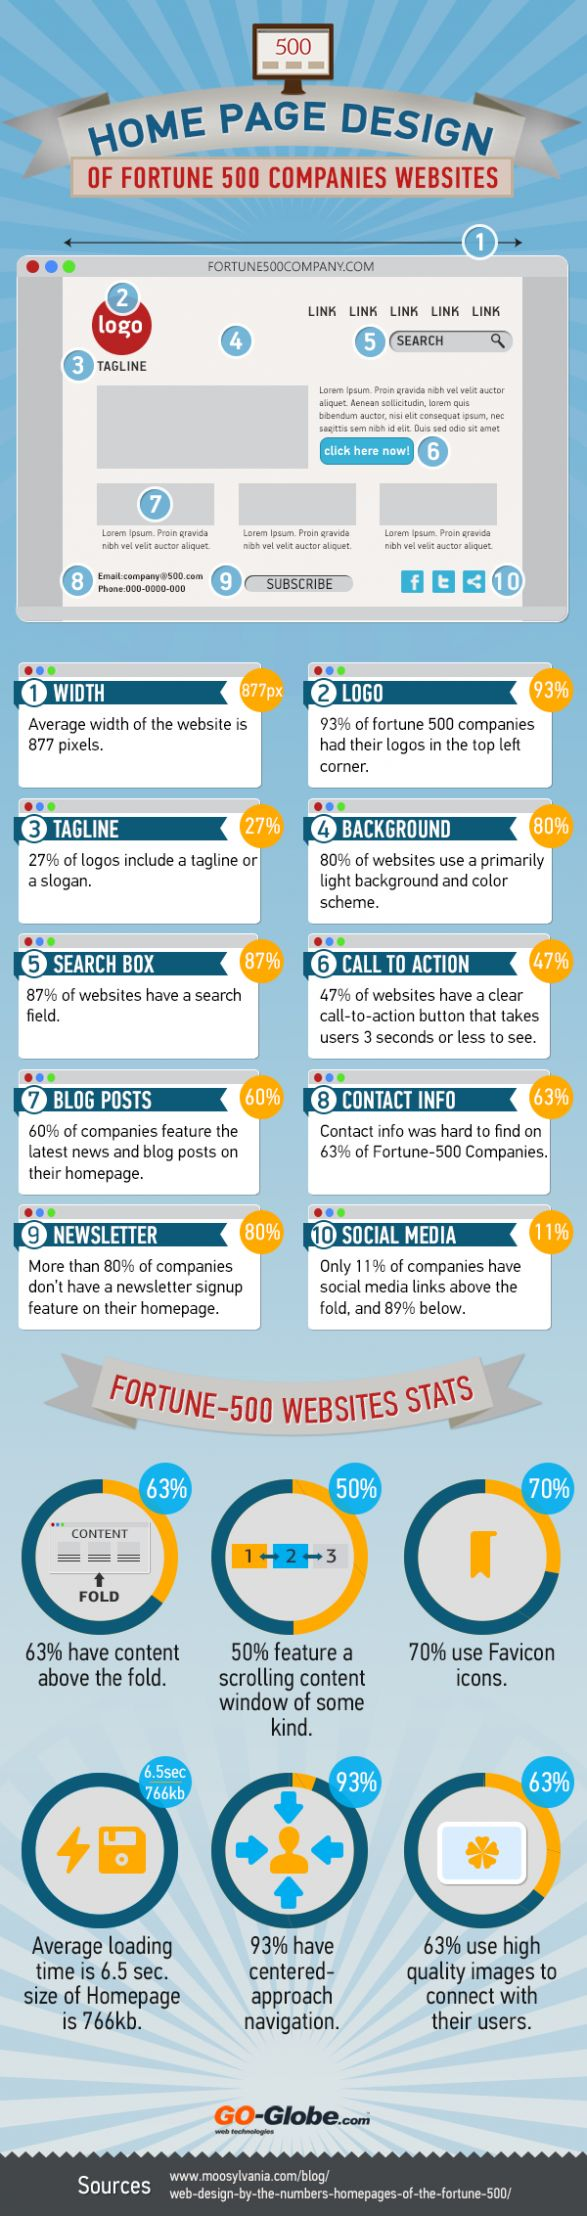 Web Design Trends of Fortune 500 Companies [Infographic] - Designbeep